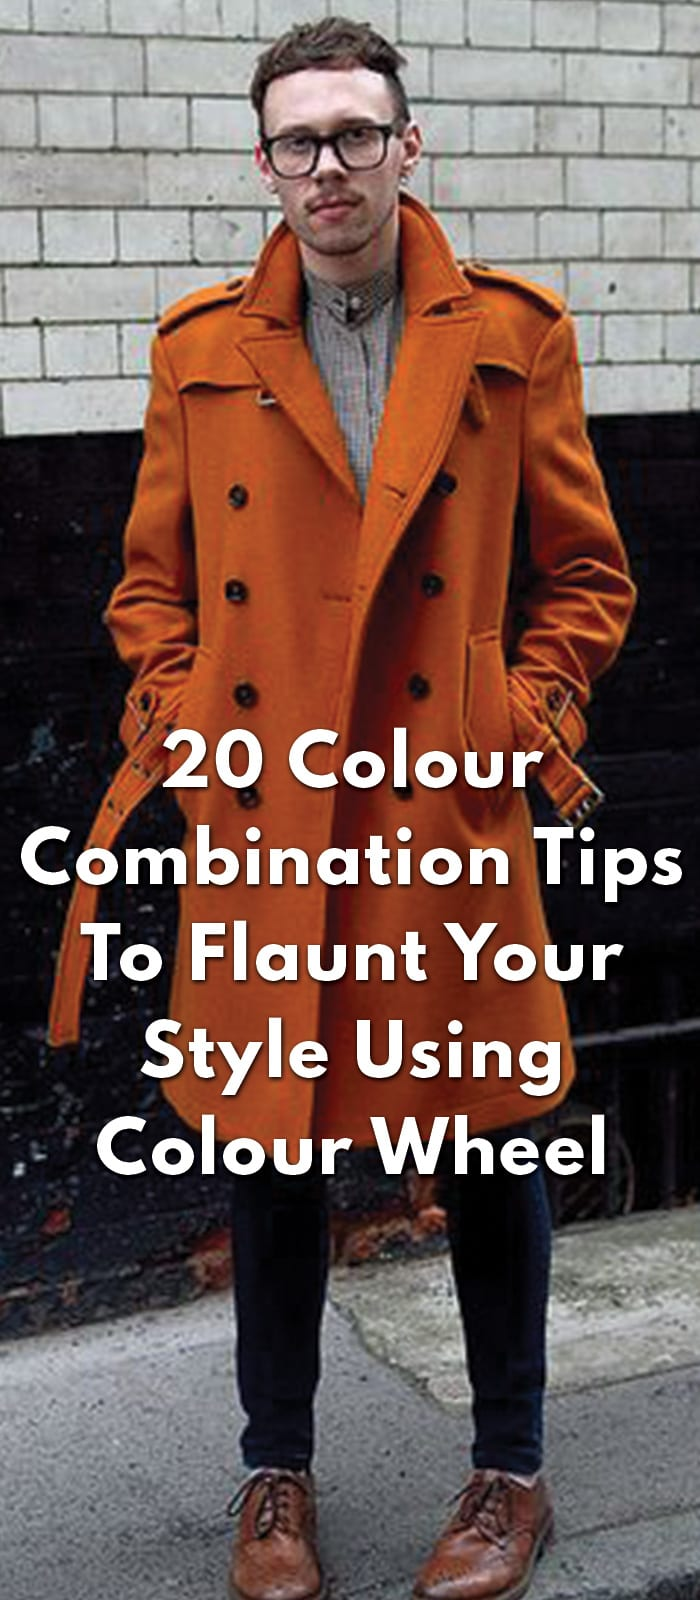 20-Colour-Combination-Tips-To-Flaunt-Your-Style-Using-Colour-Wheel